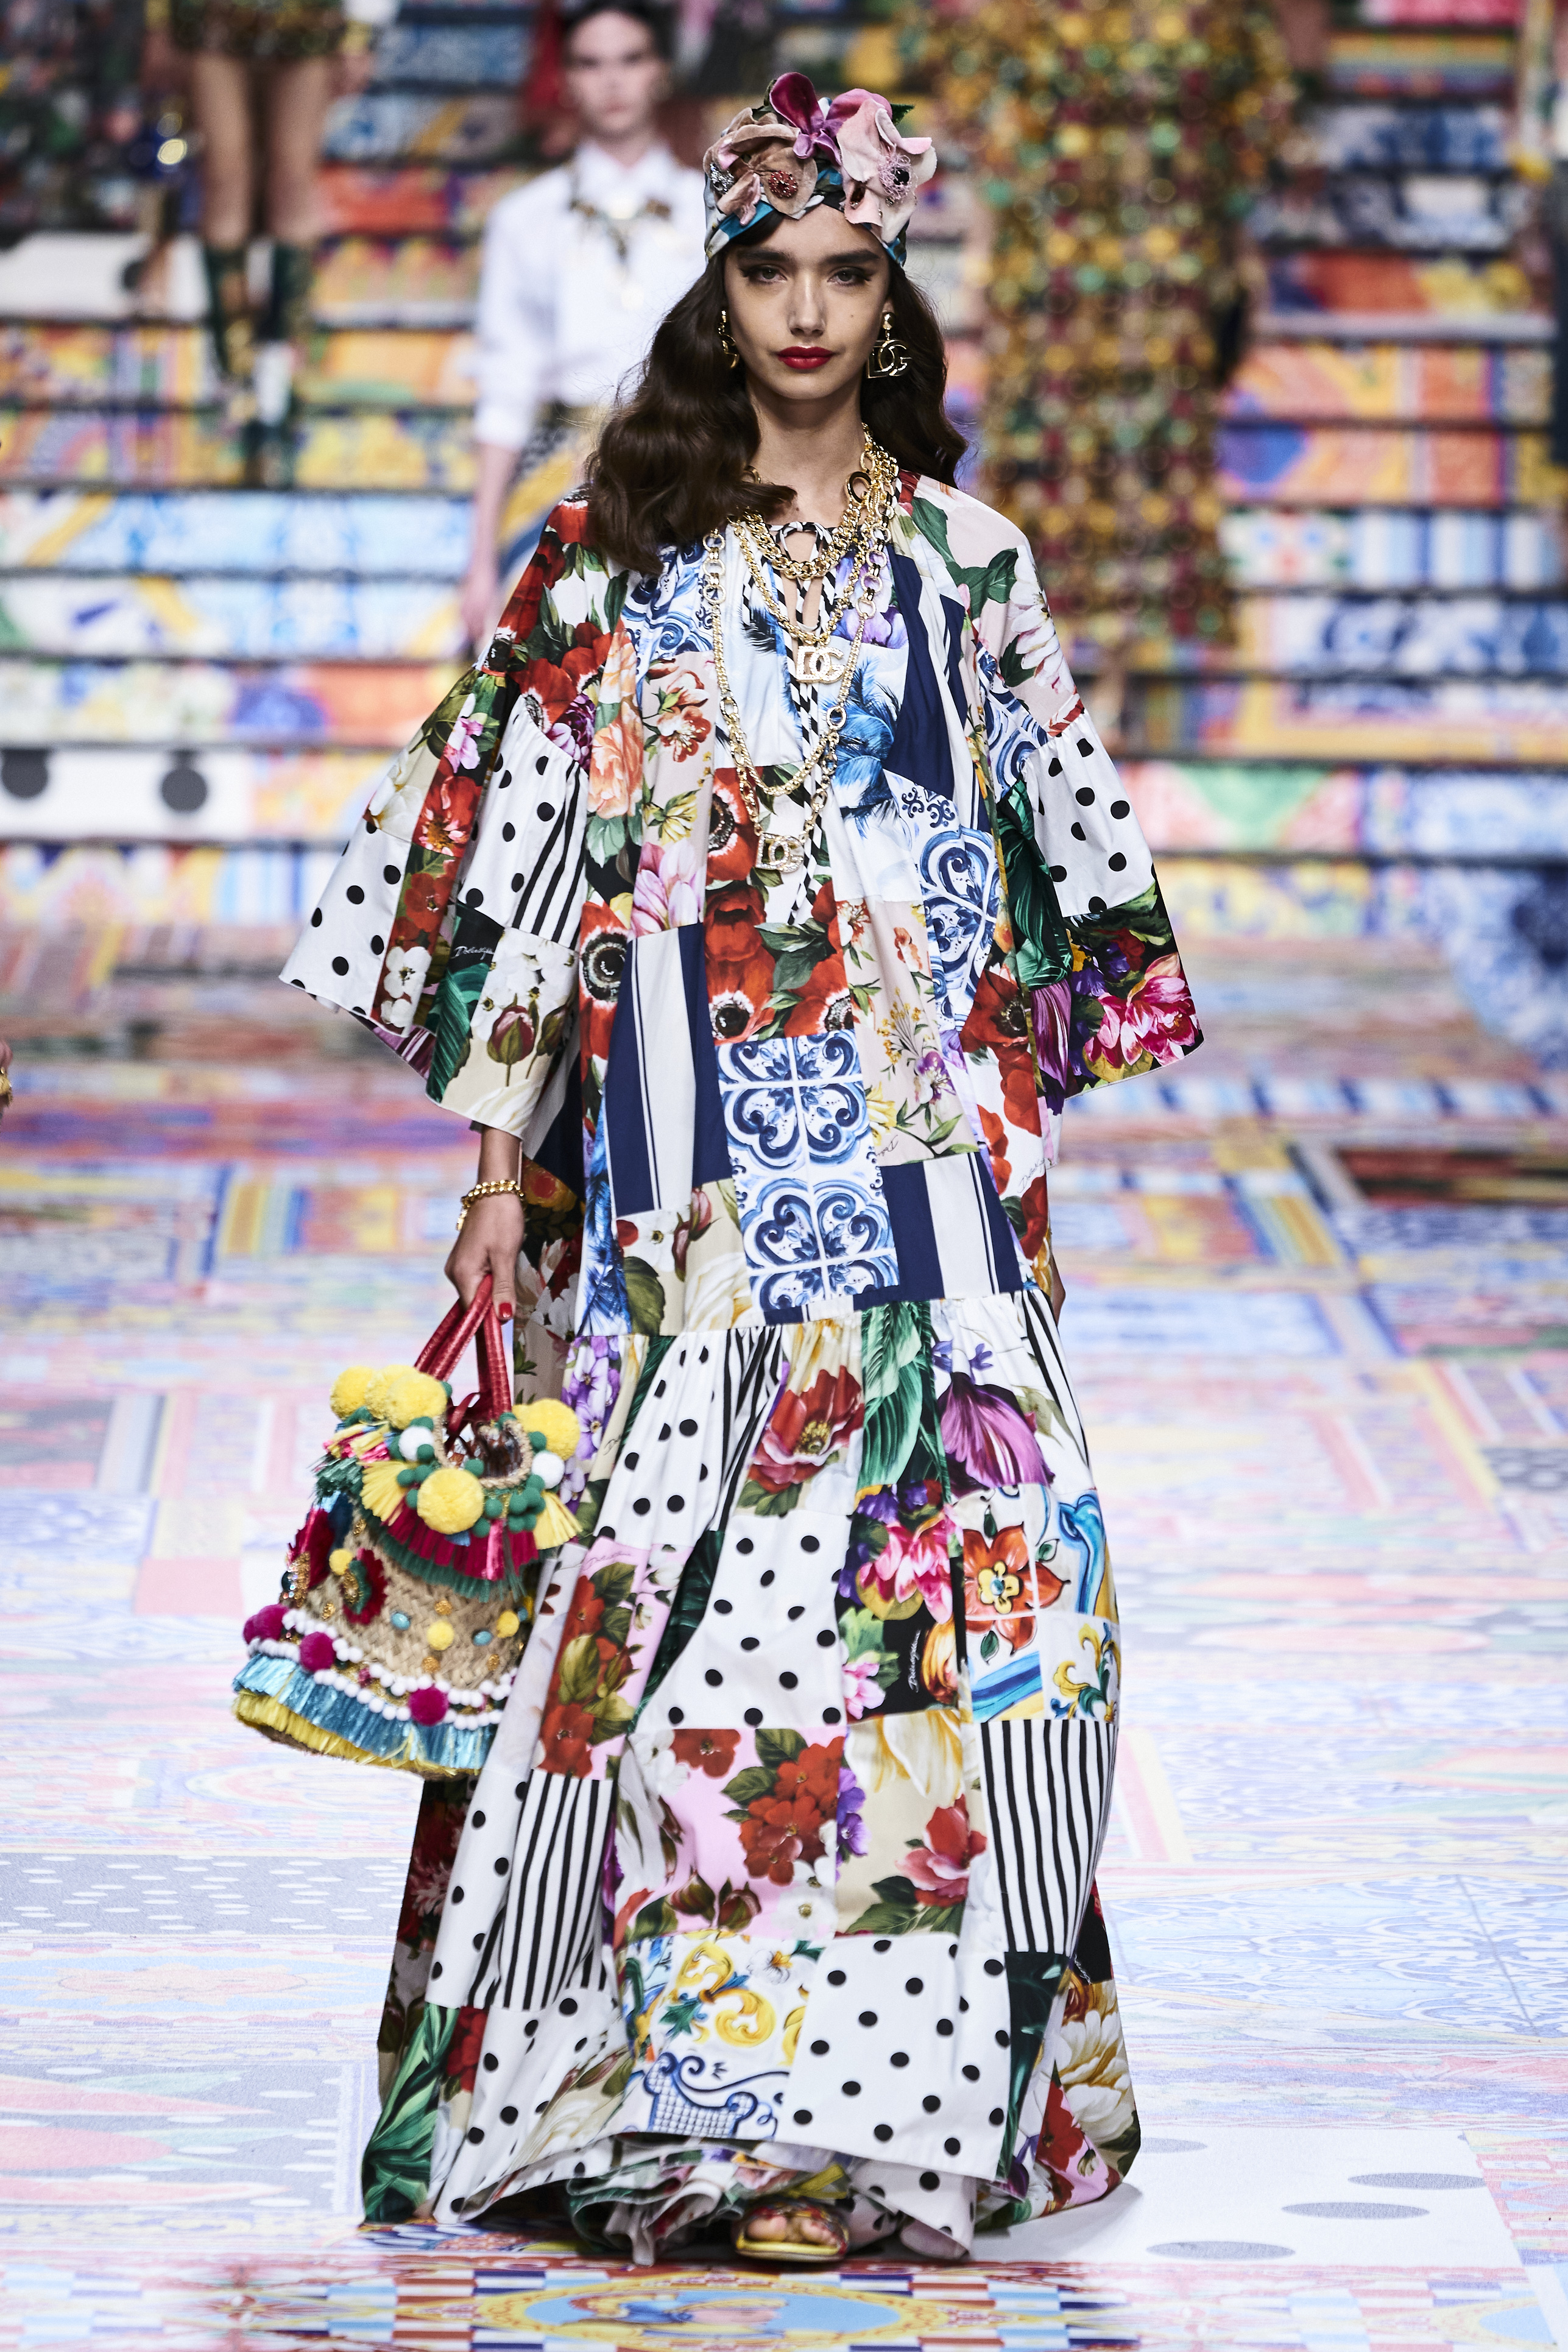 Prints galore: Dolce & Gabbana and Versace's Spring/Summer '21 collection (фото 9)